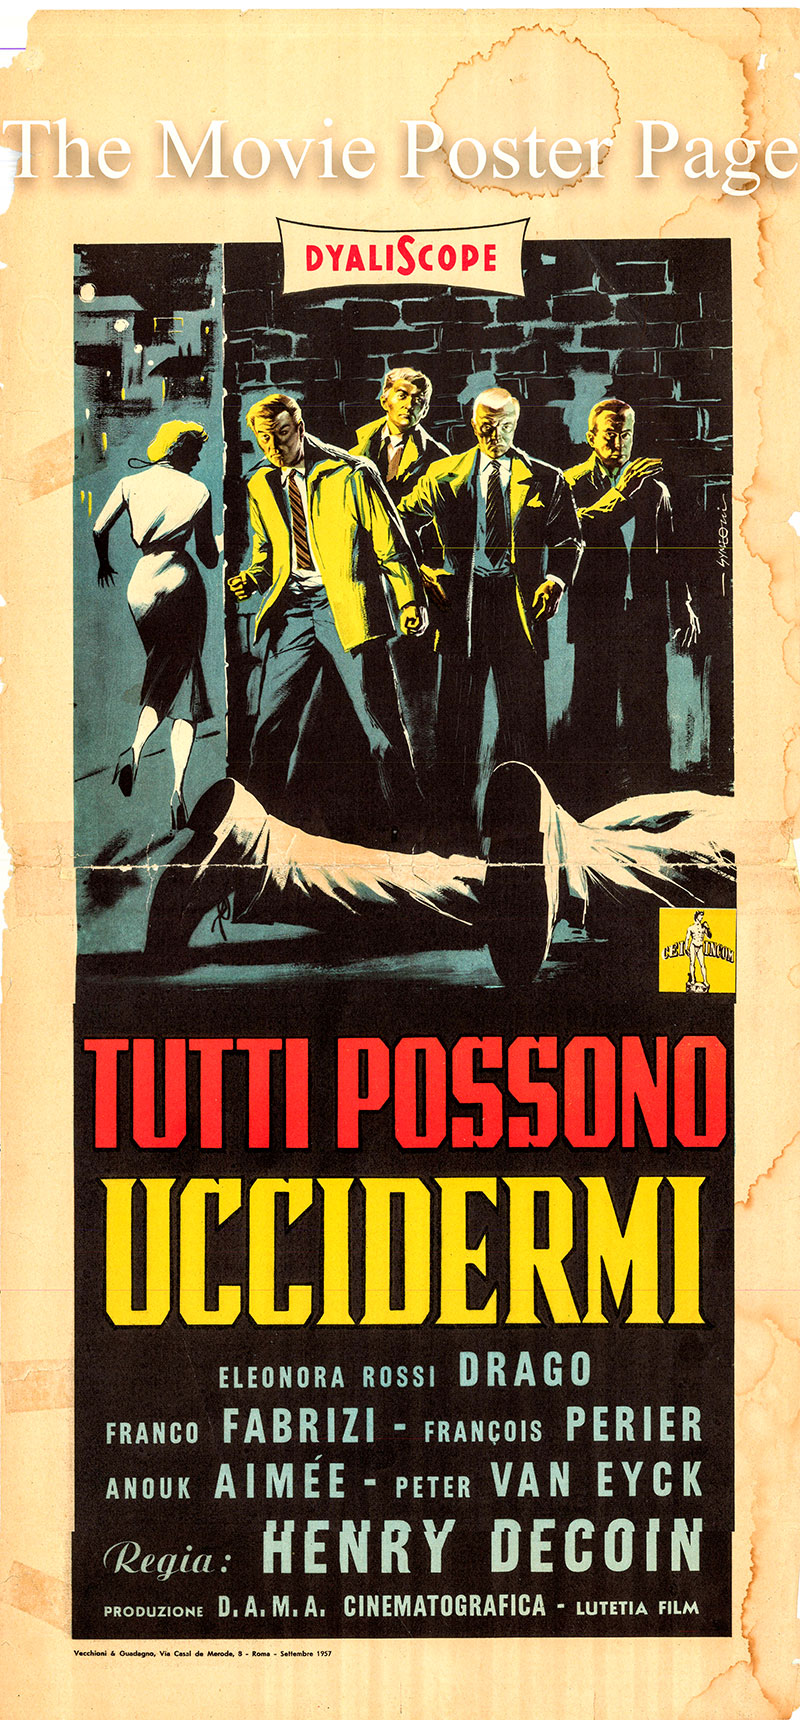 Pictured is an Italian locandina poster for the 1957 Henri Decoin film Anyone Can Kill Me starring François Périer as Paul.